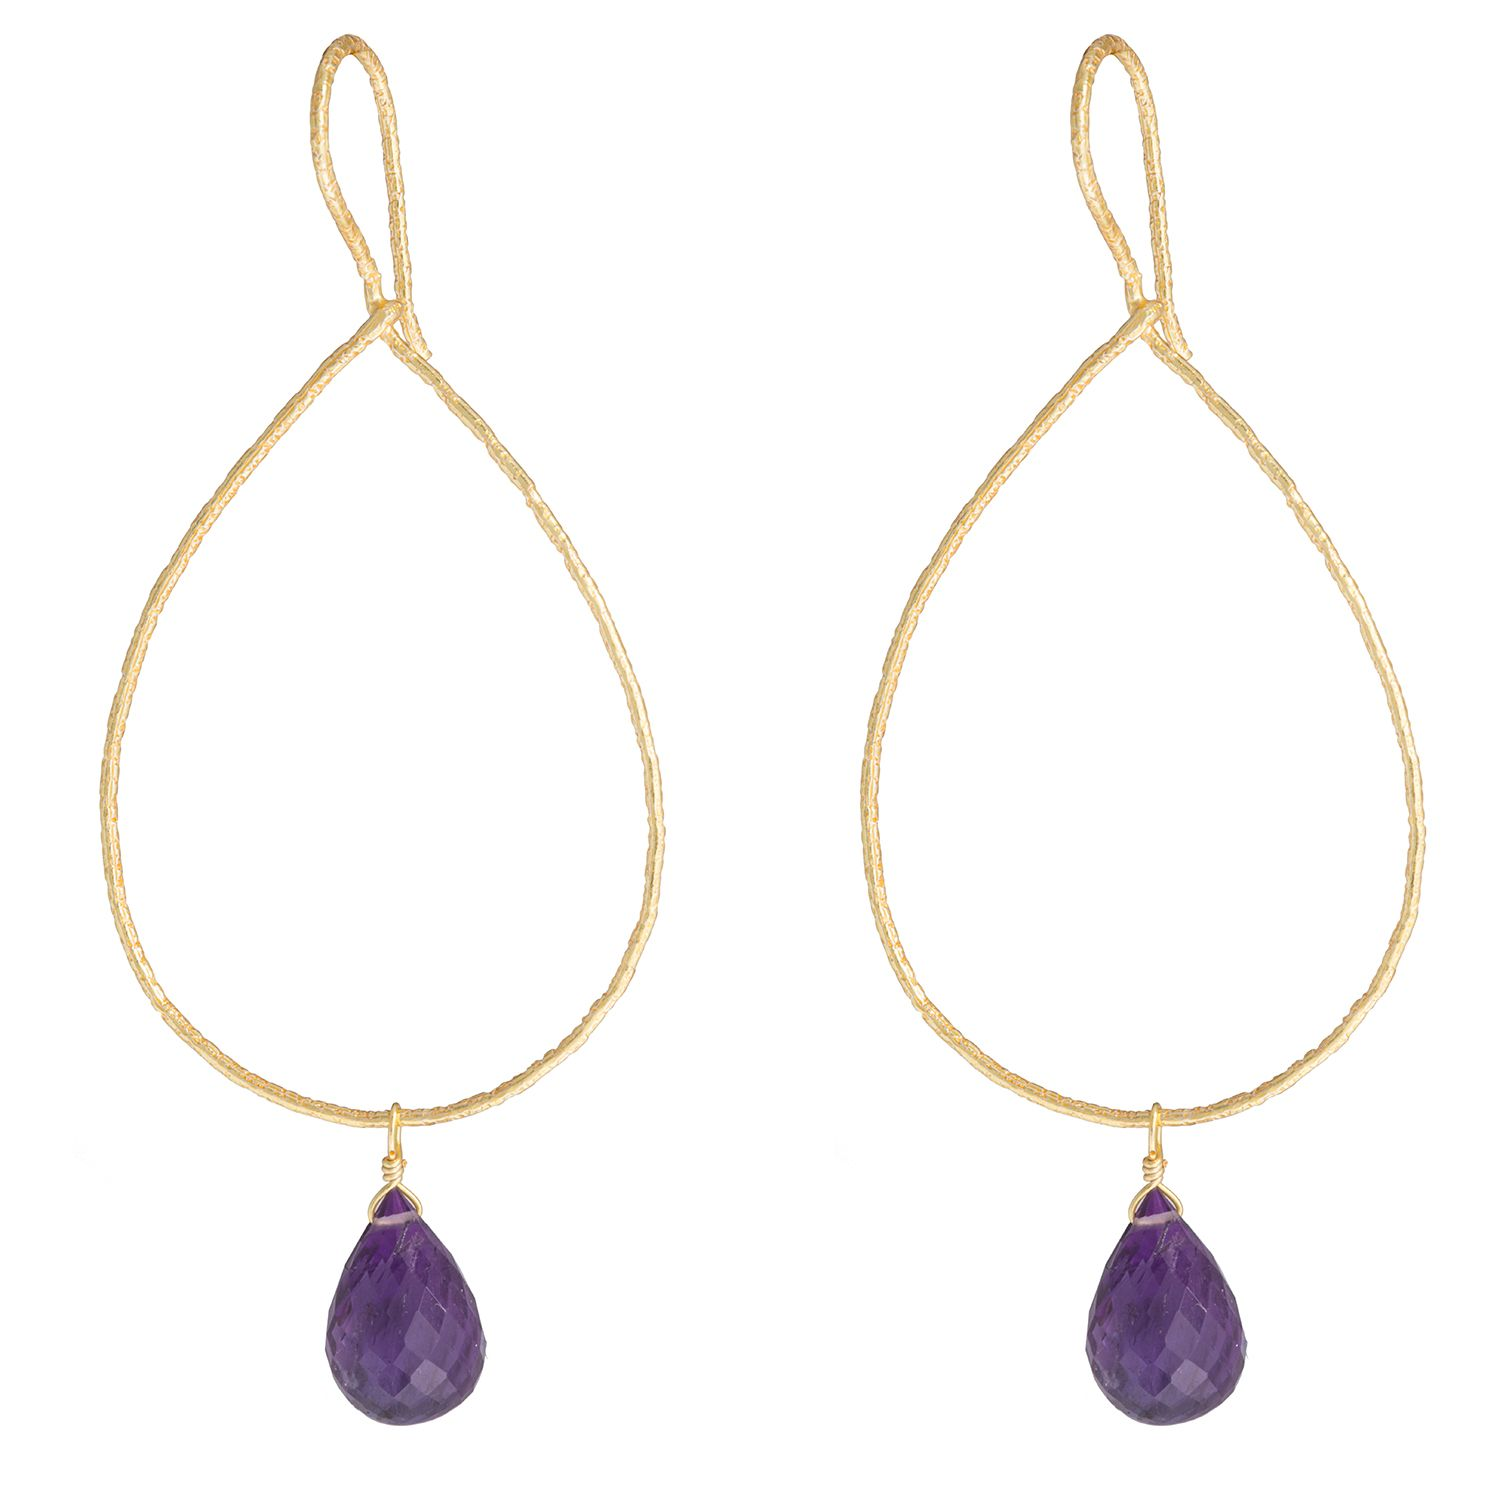 Juvi Designs Gold vermeil boho sway me earrings, Purple